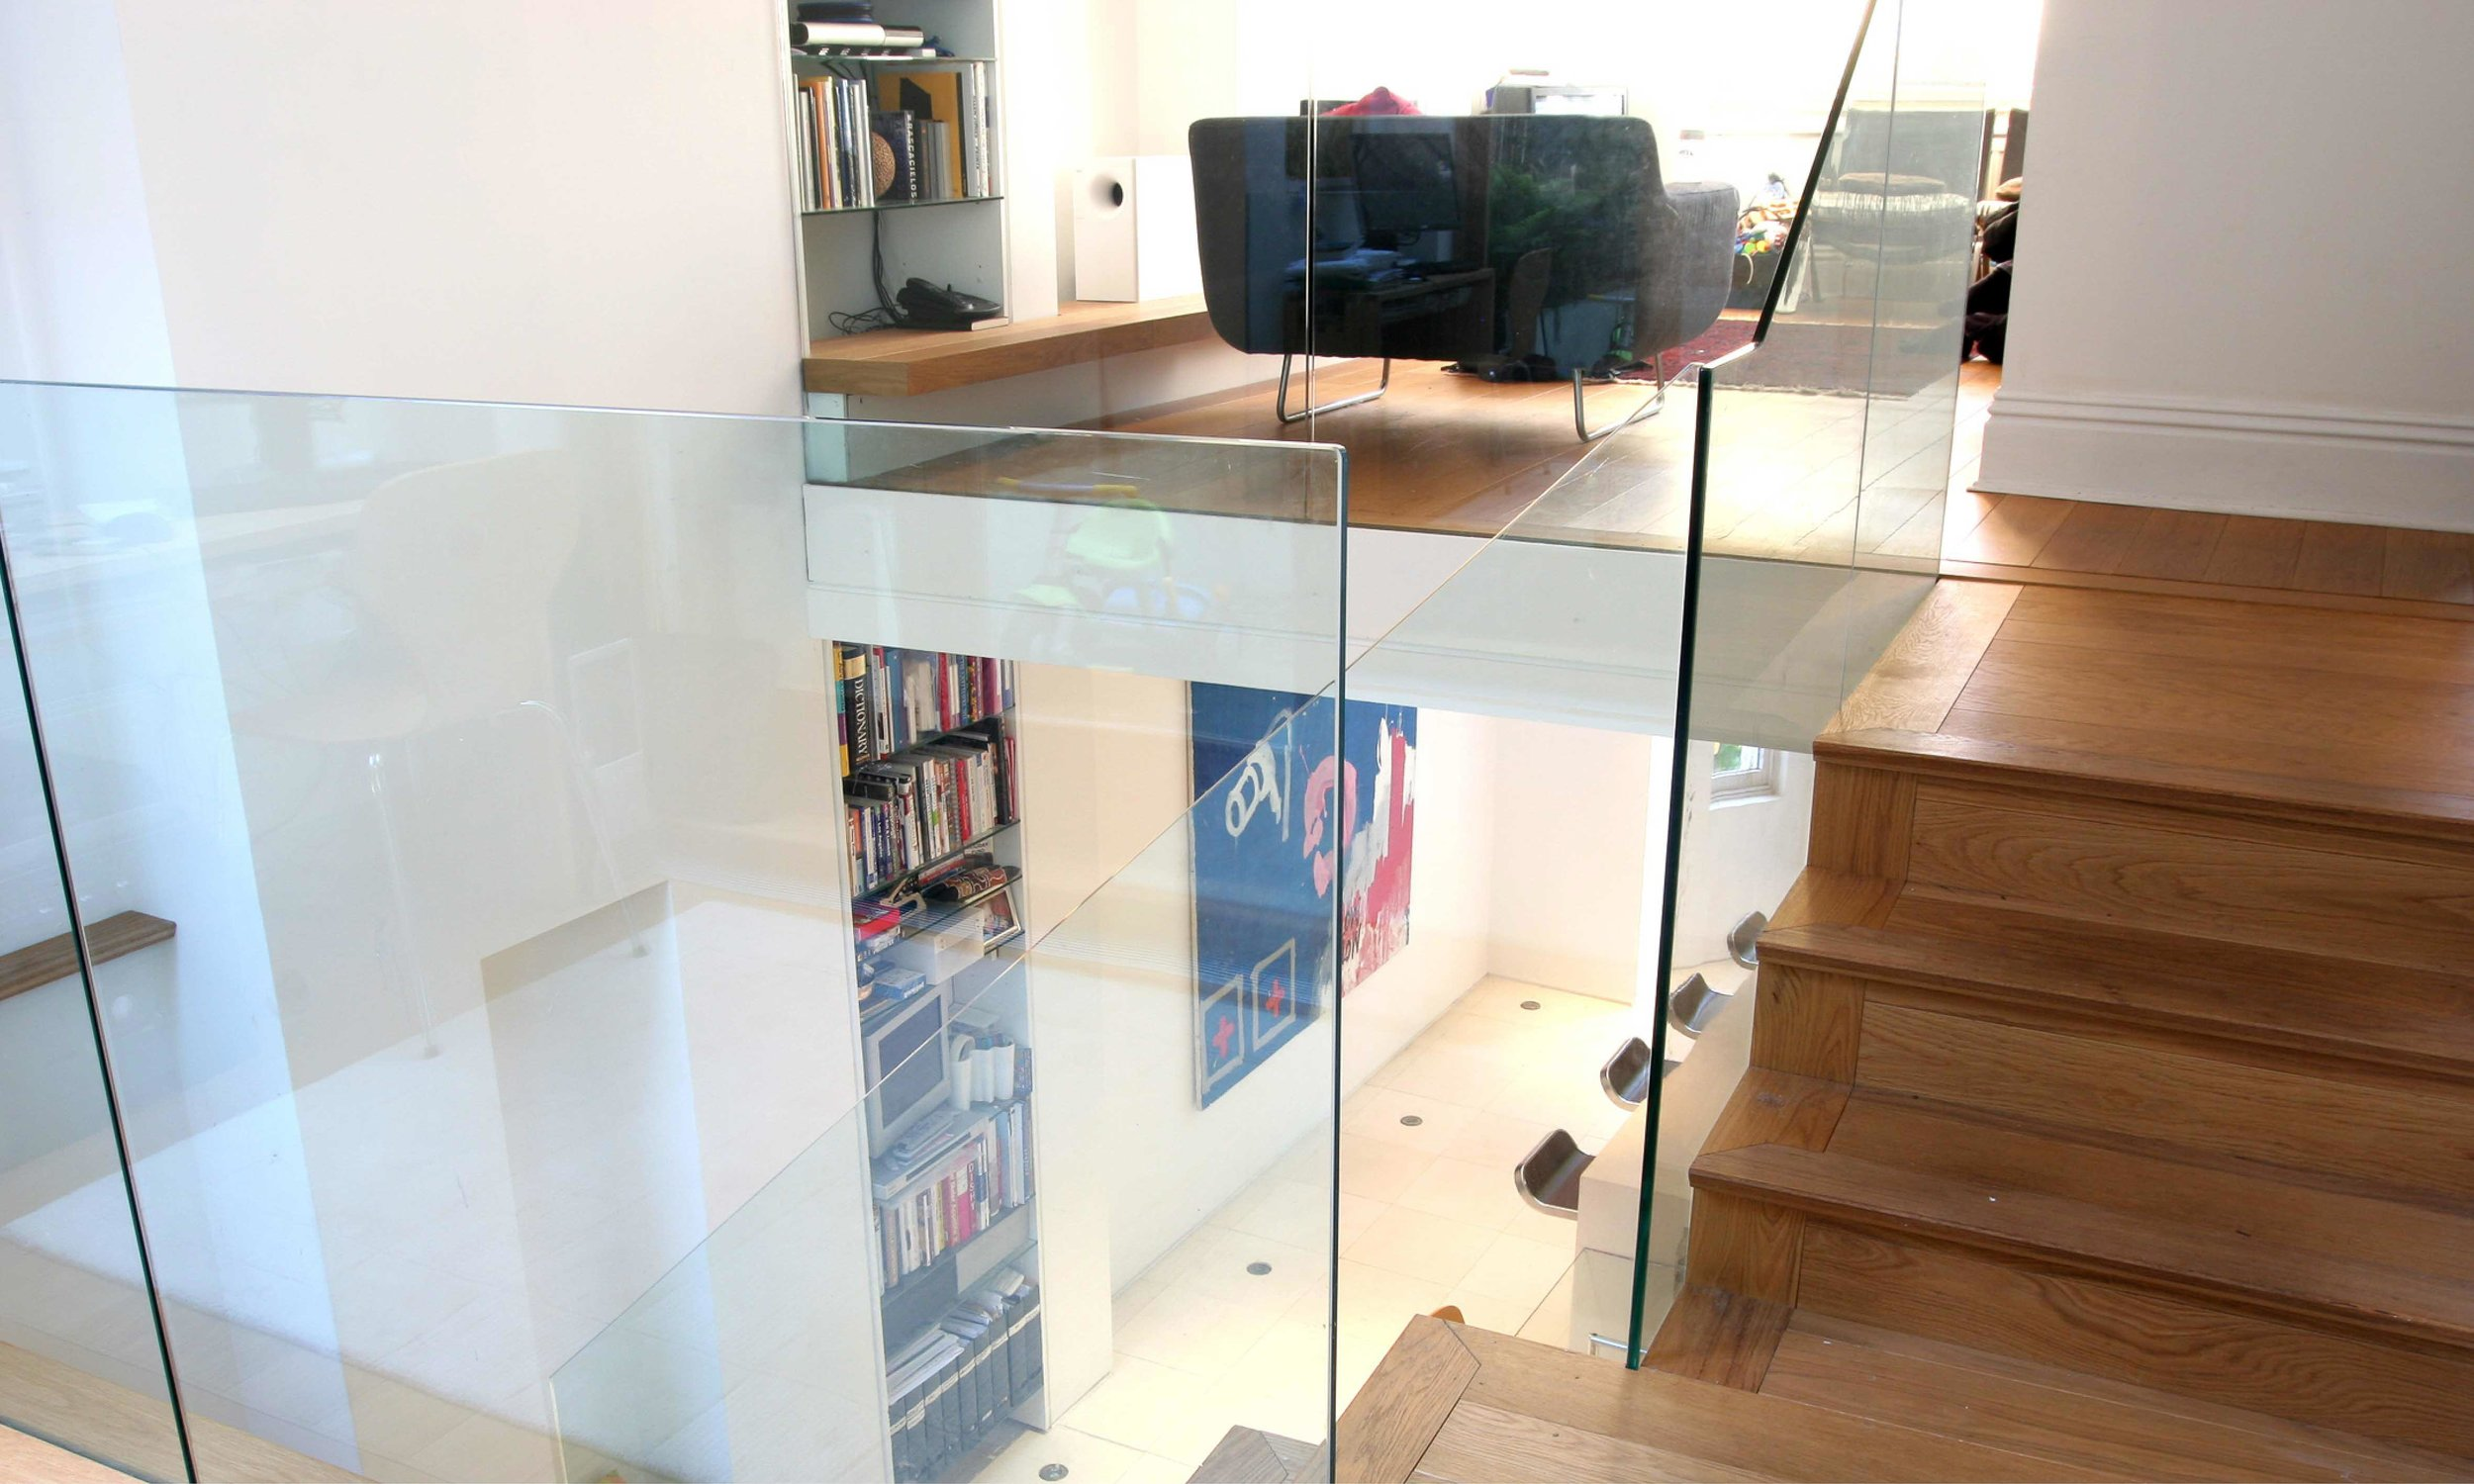 Detail image showing the frames glass balustrades that surround the staircase. These allow natural light to flow down through the living and dining spaces down into the kitchen,